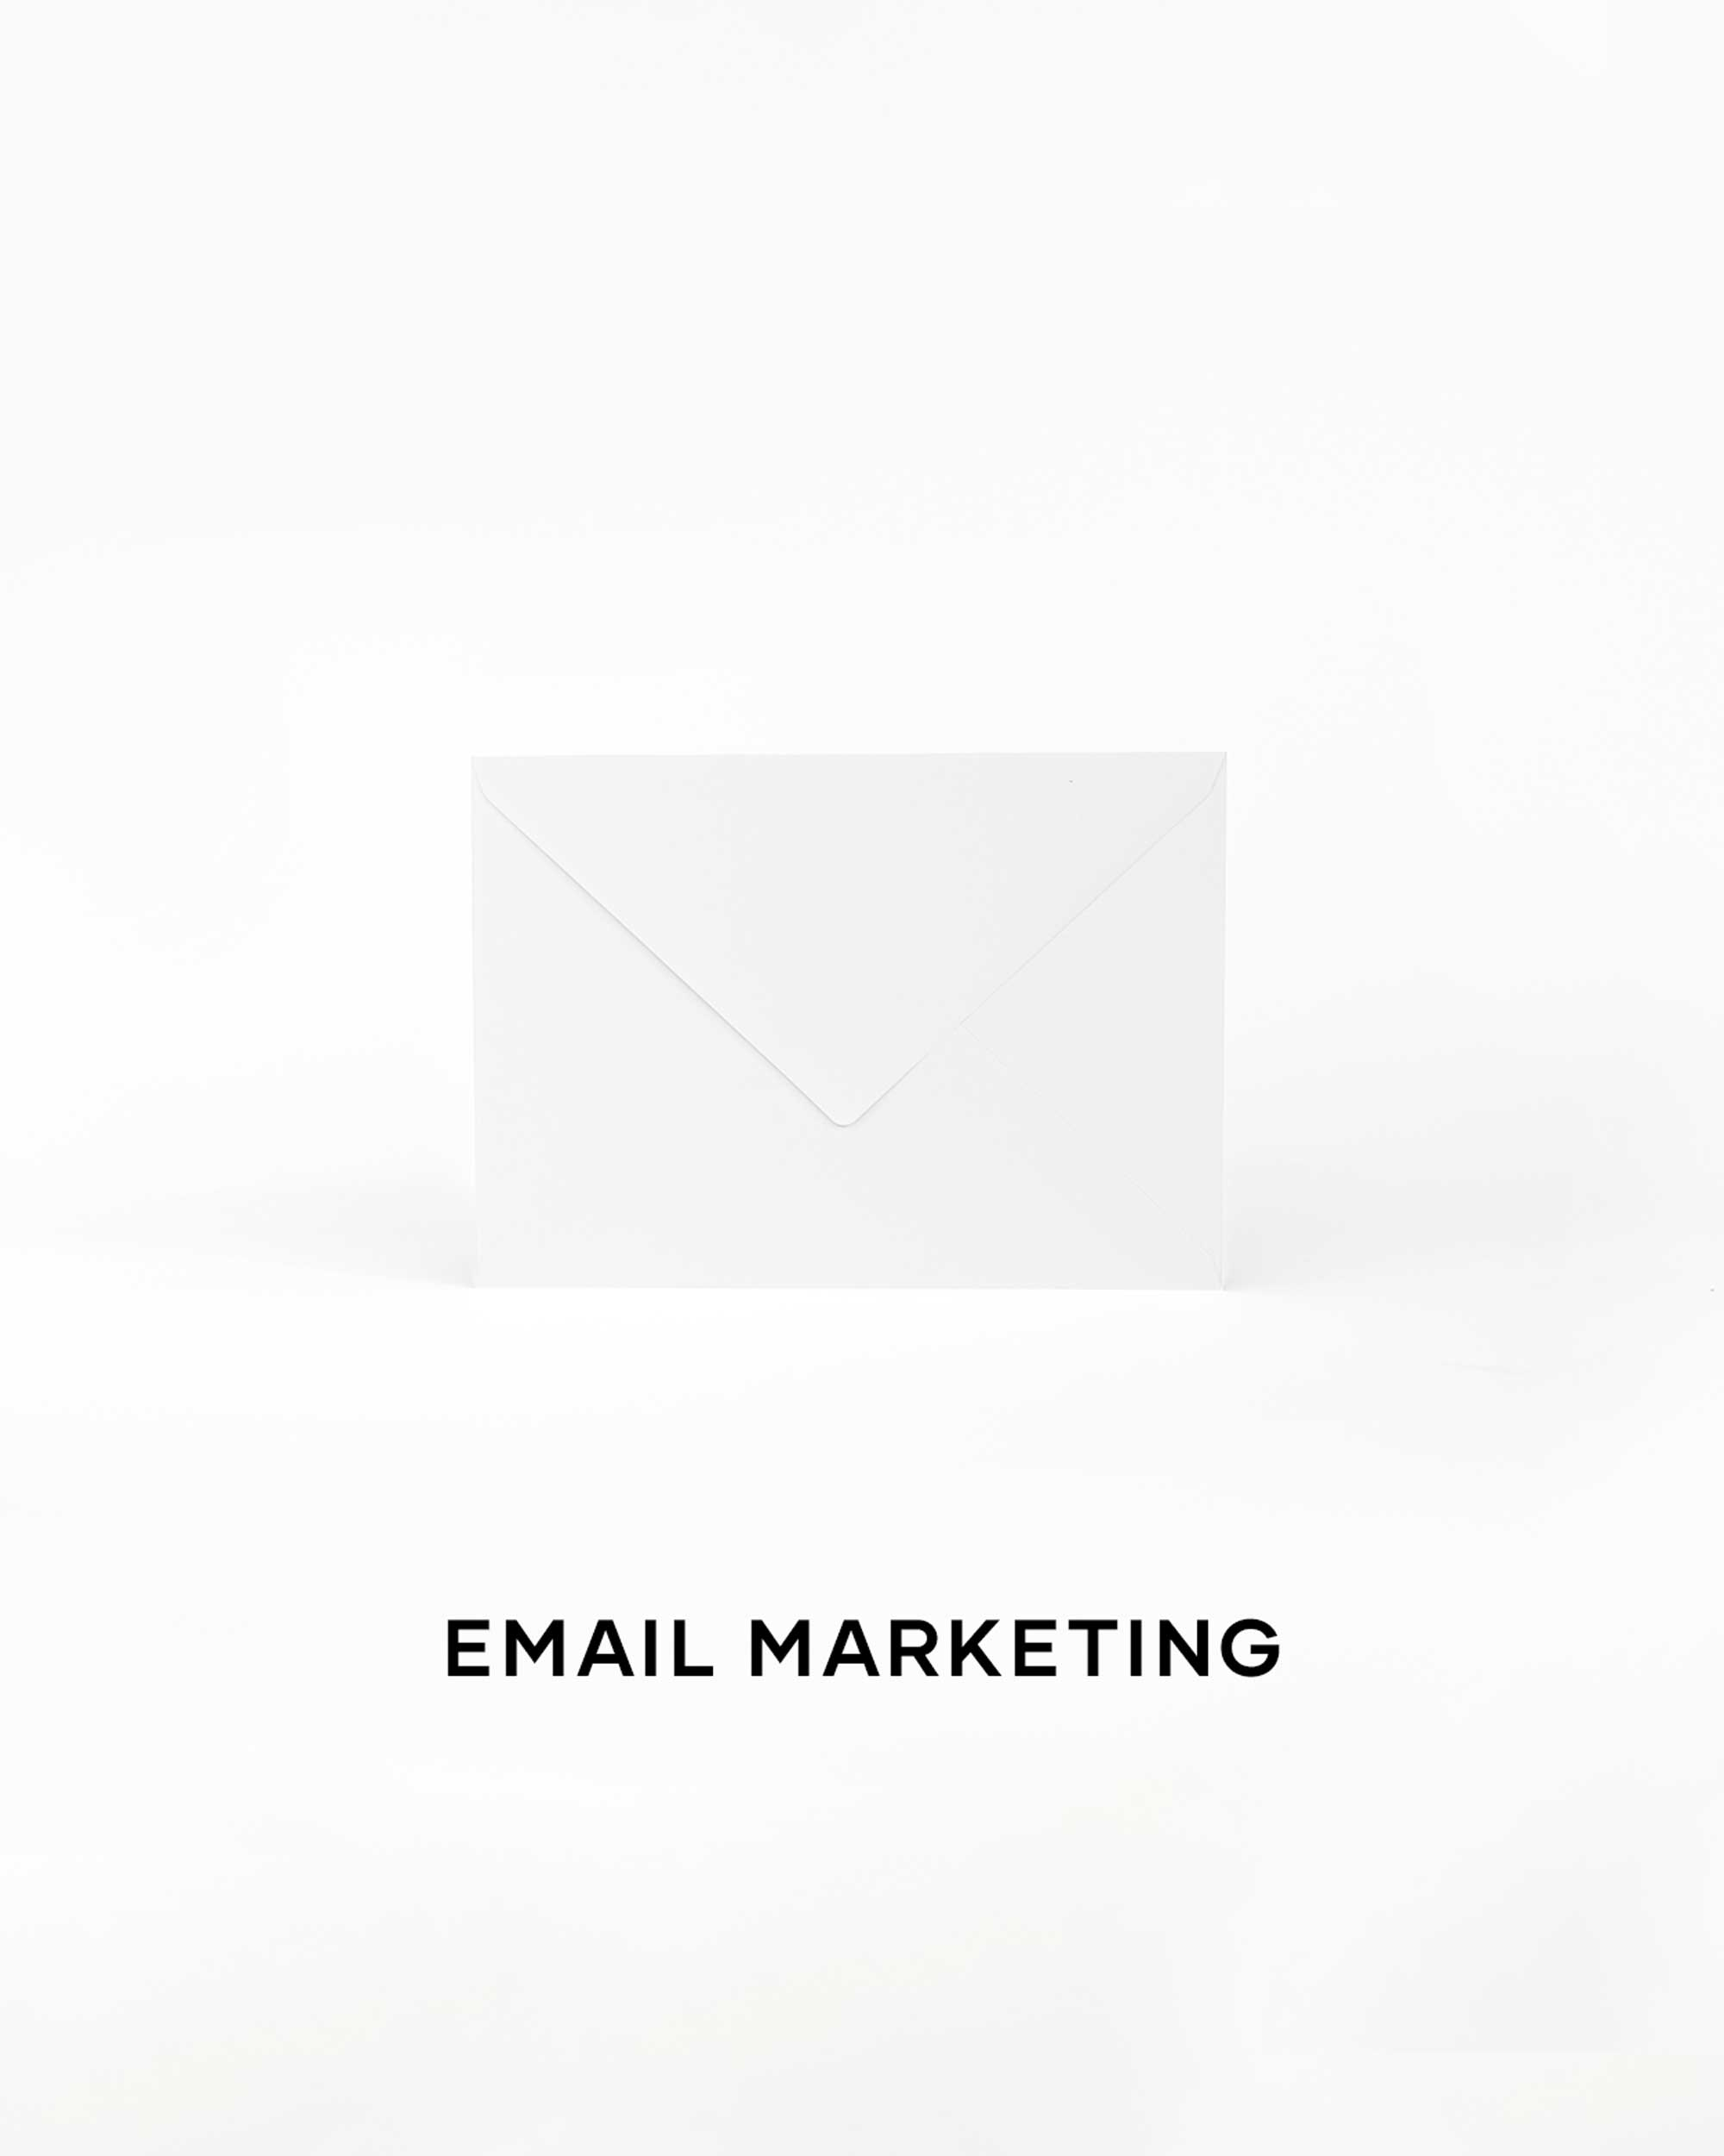 services-april-ford-Email-Marketing.jpg